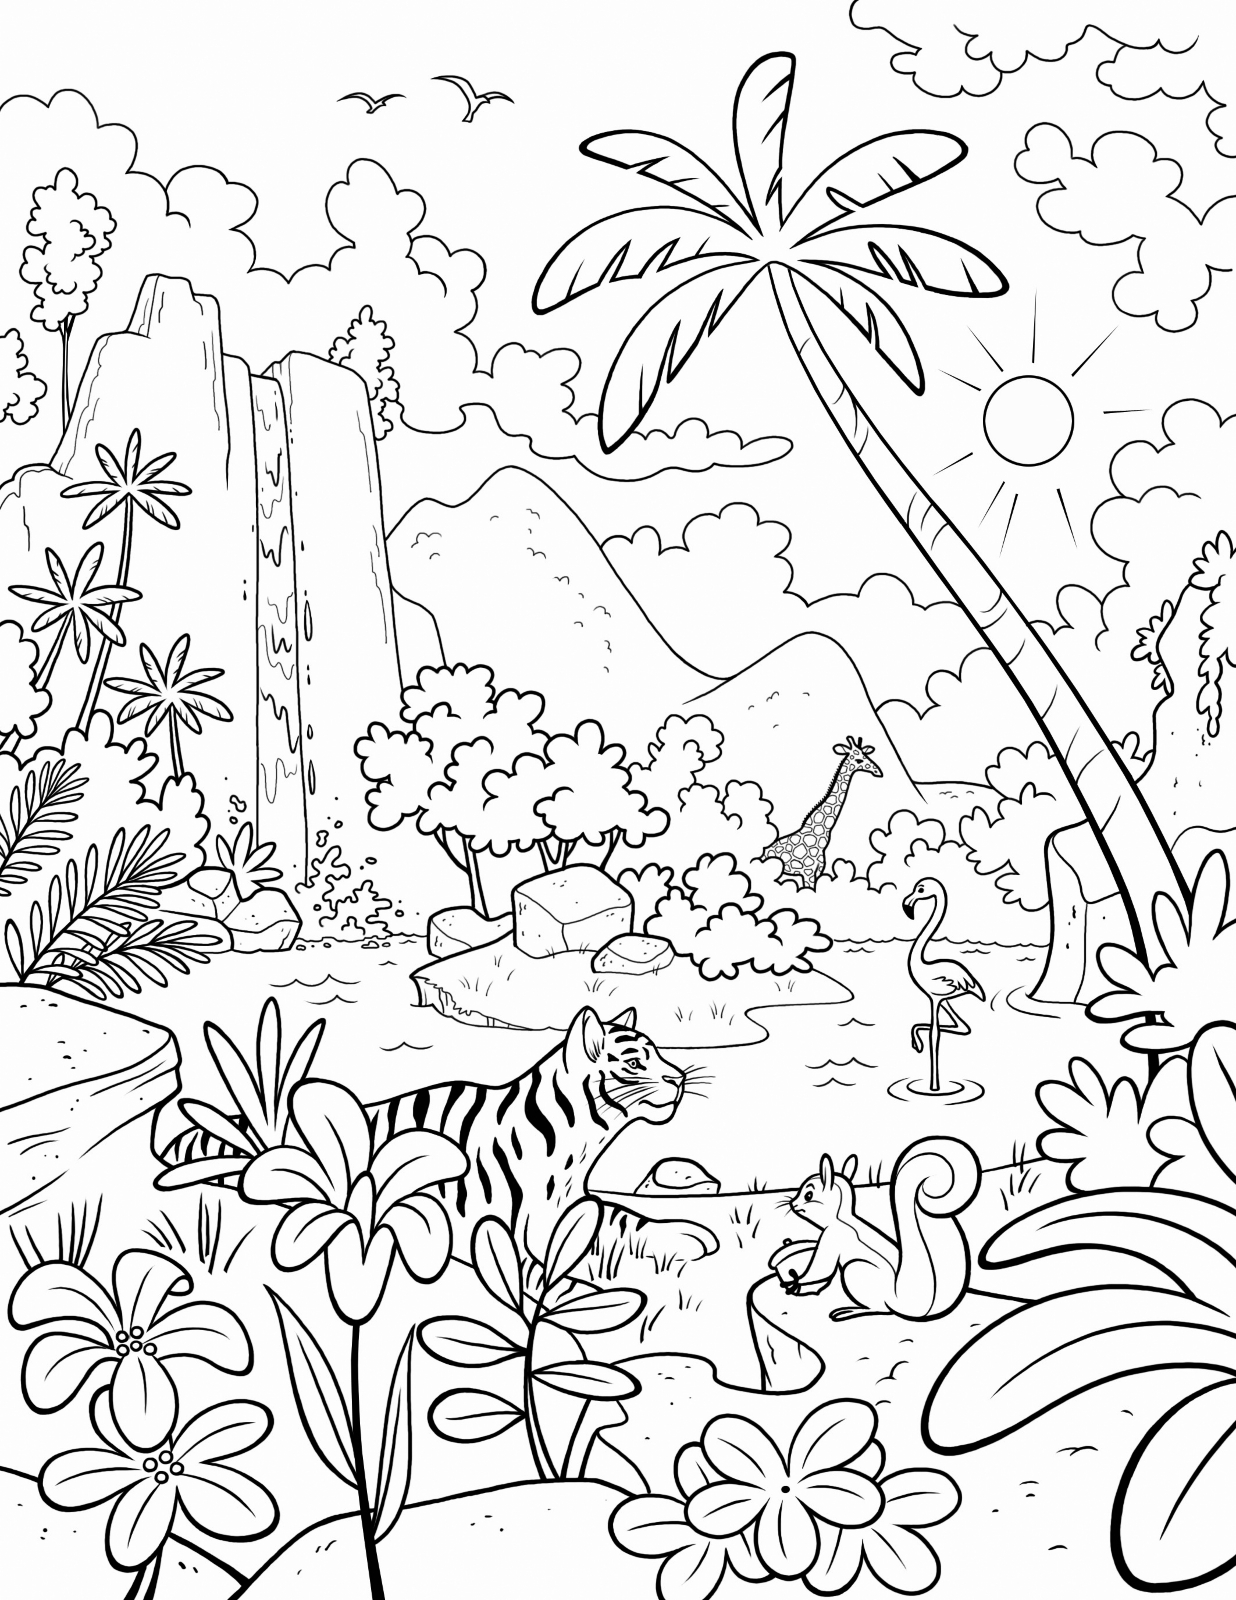 Line Art Jungle Animals : Jungle